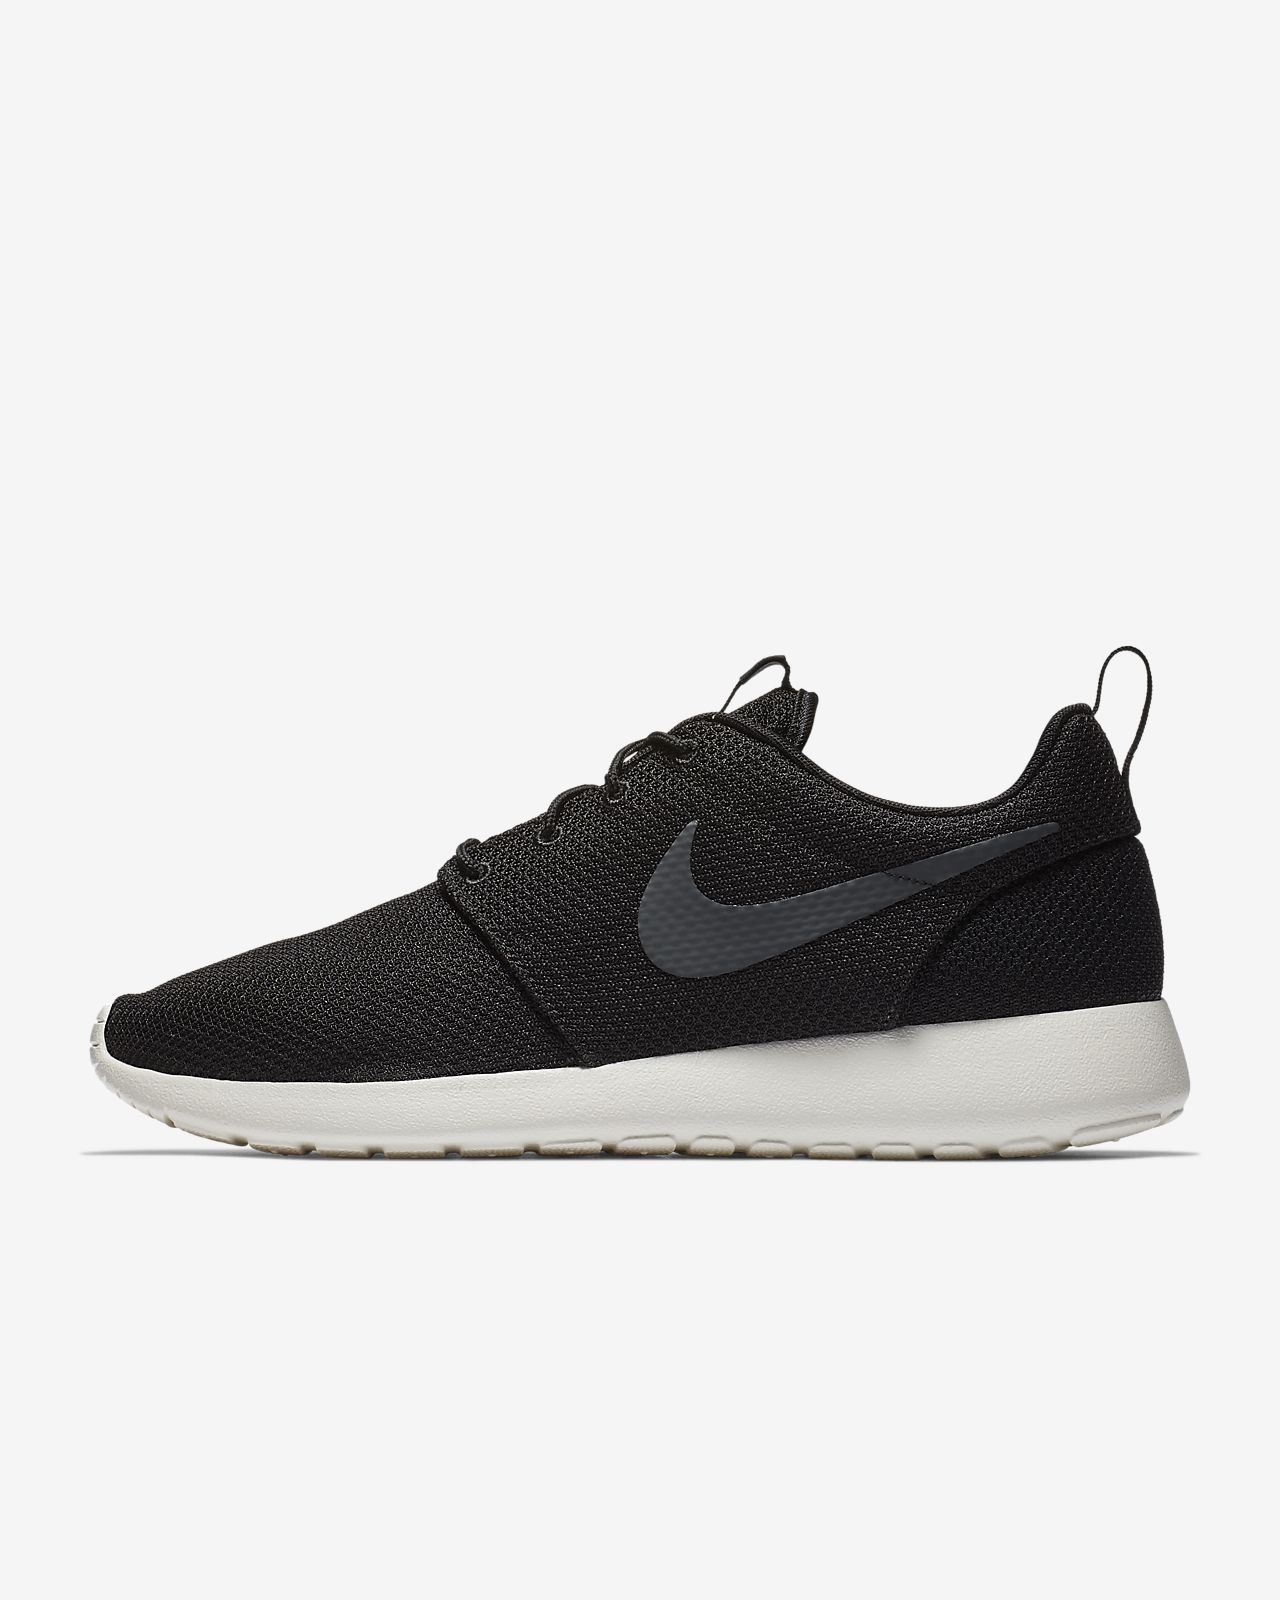 the latest 67c4e 7c477 Nike Roshe One Men's Shoe